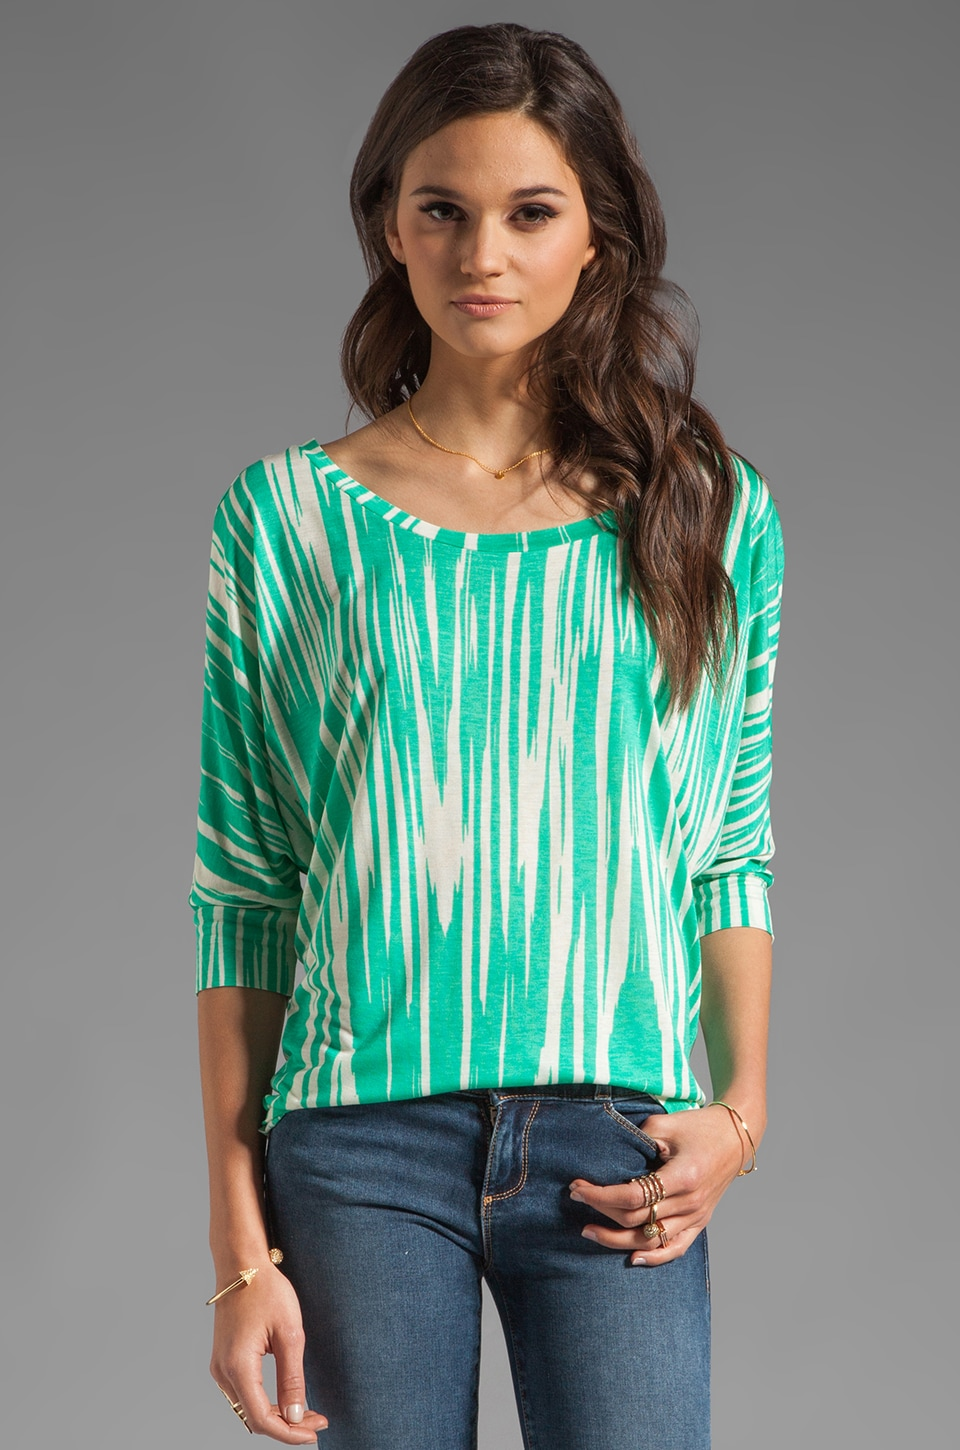 Velvet by Graham & Spencer Key West Bella Top in Clover